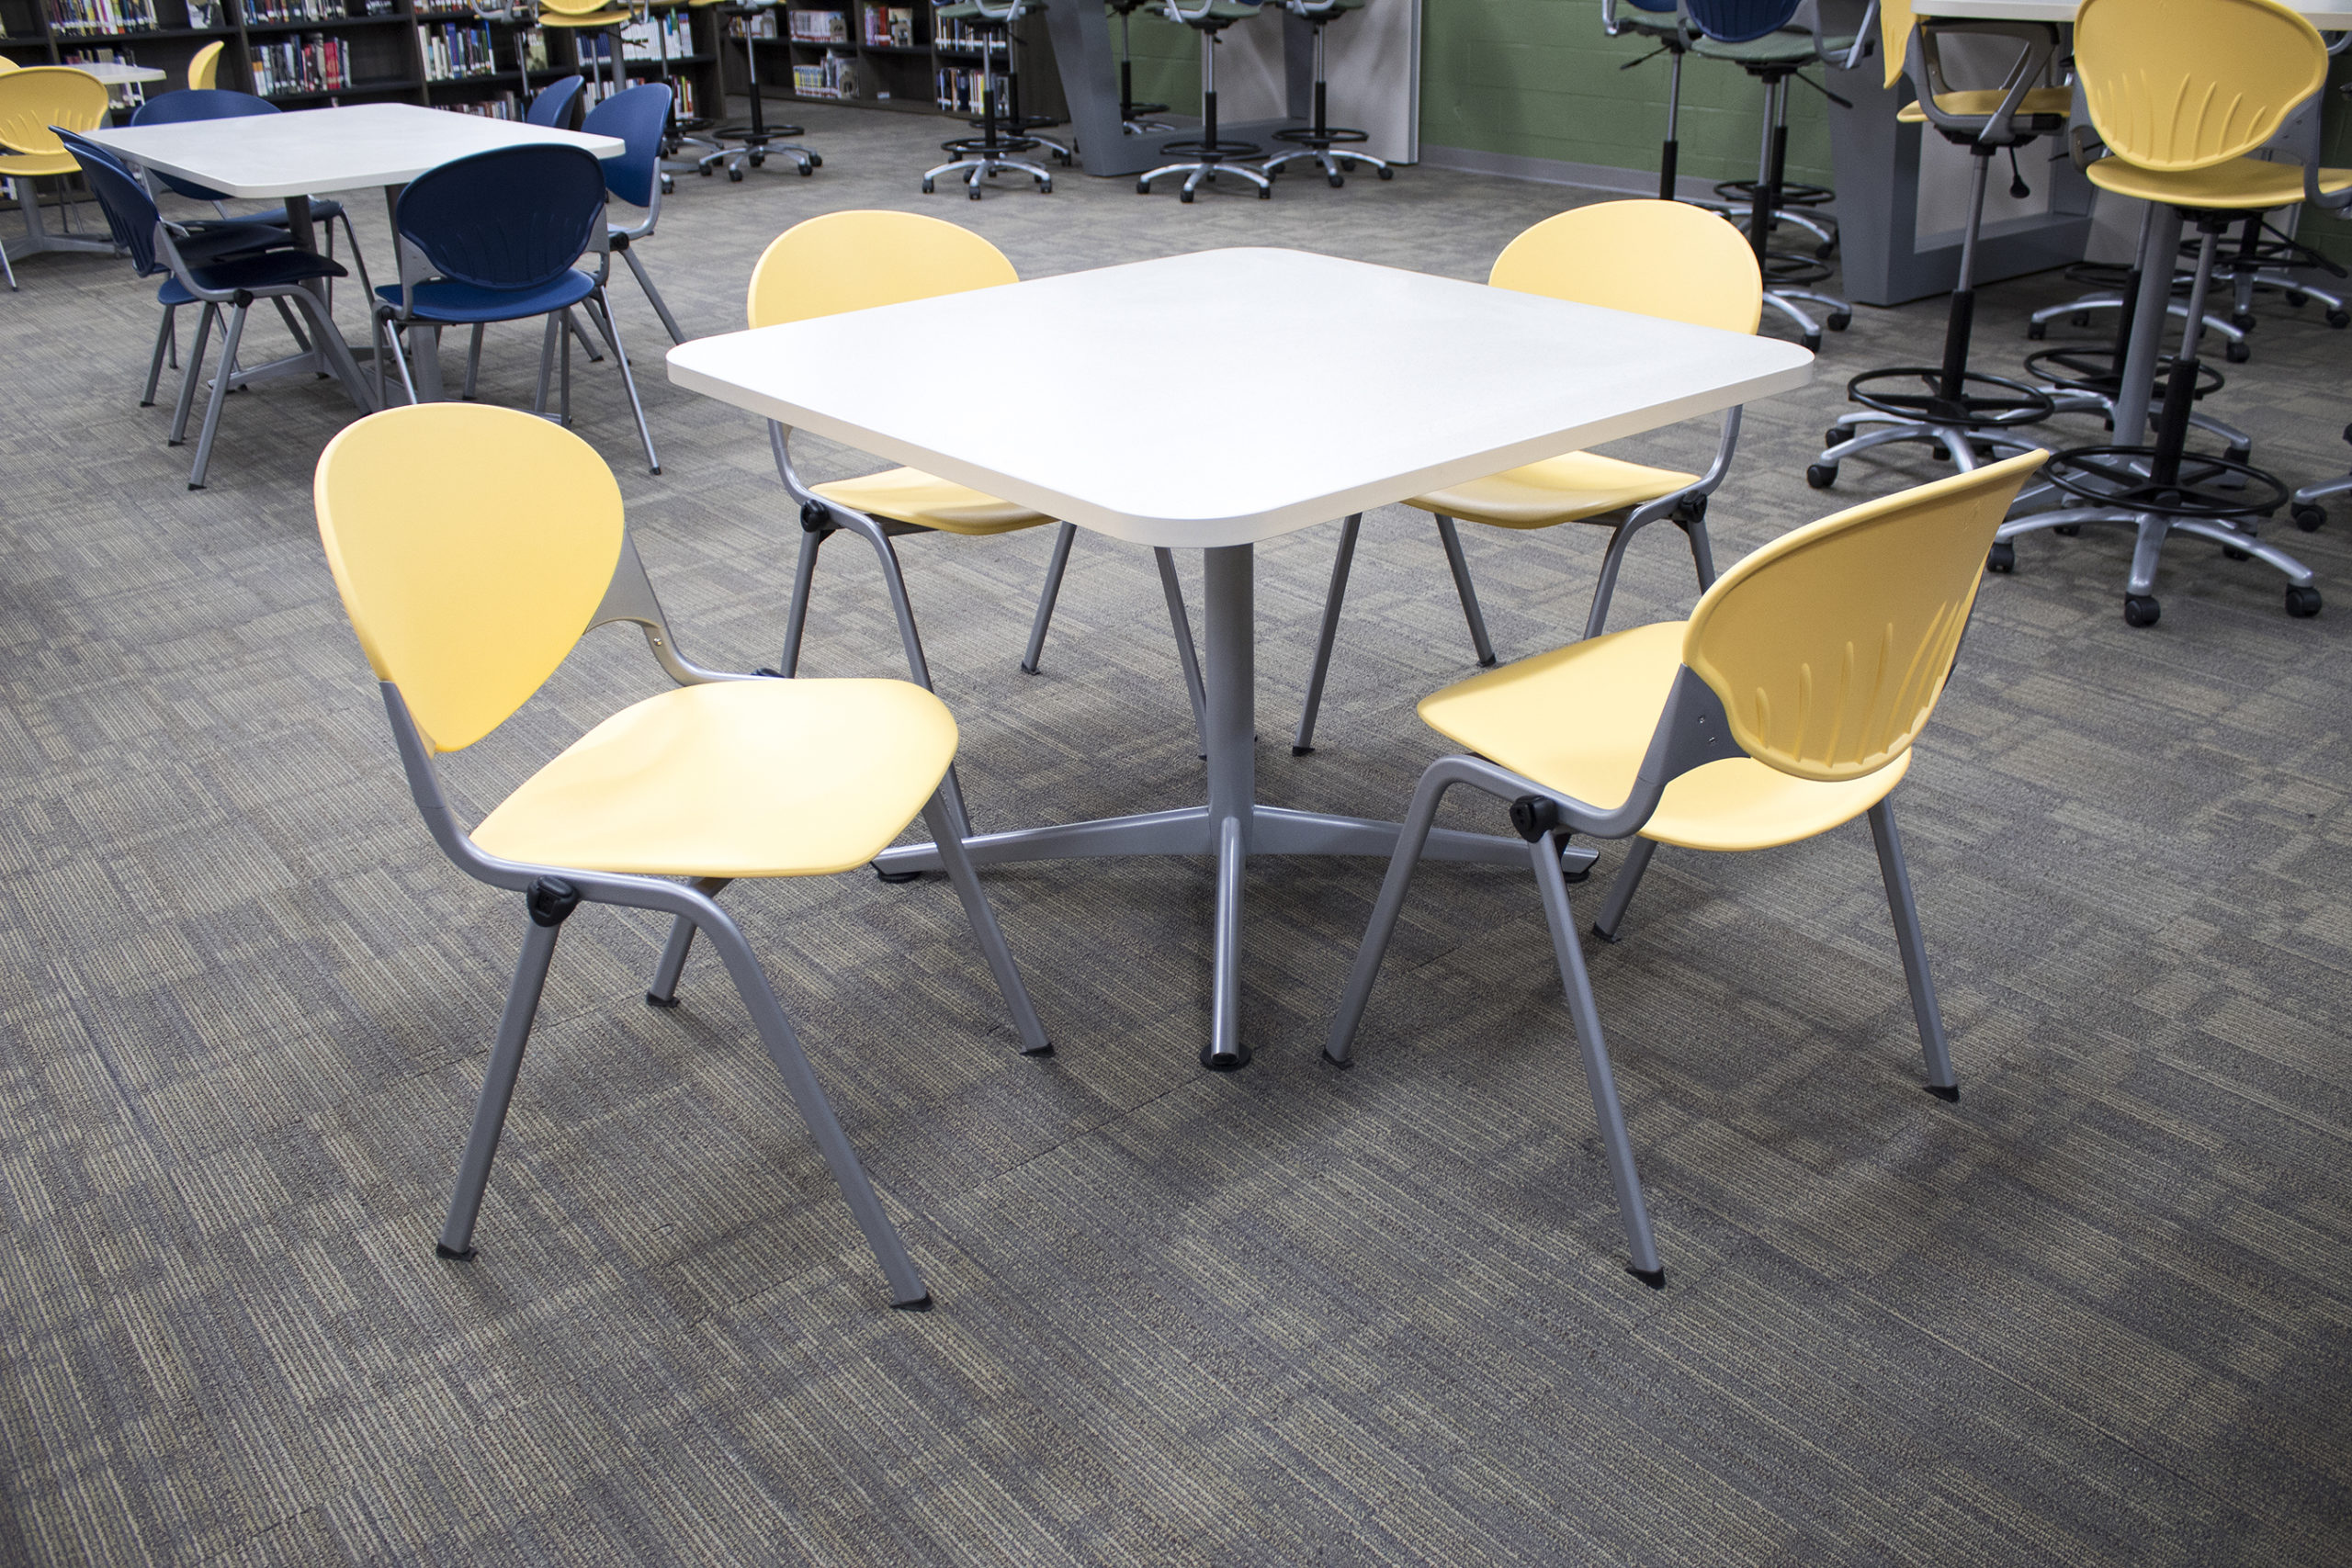 Footings Collaborative Table and Cinch Chairs - Copy